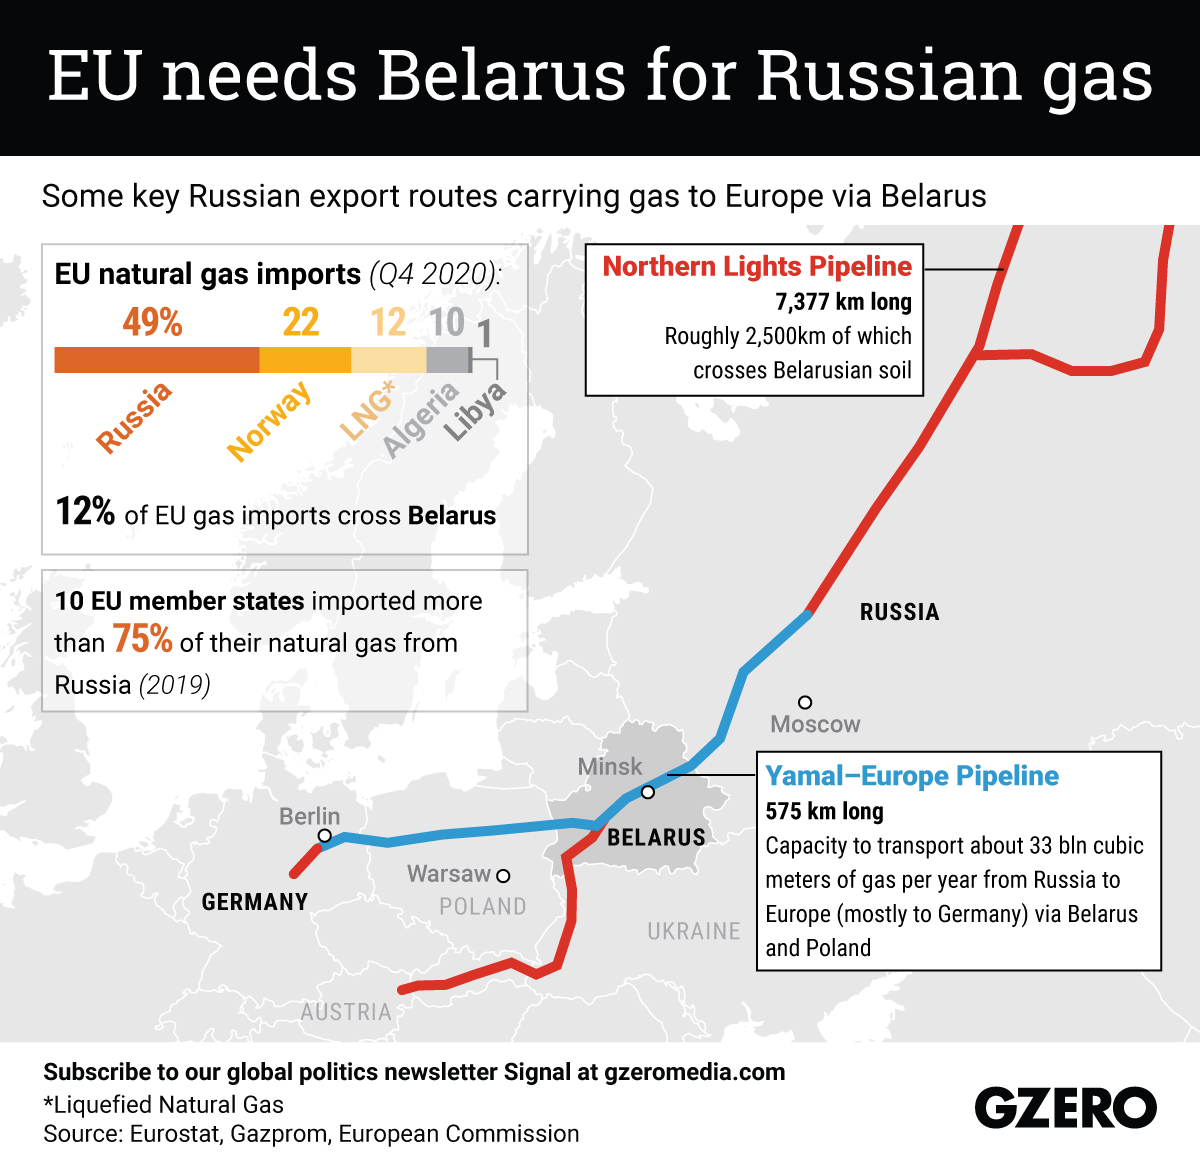 The Graphic Truth: EU needs Belarus for Russian gas